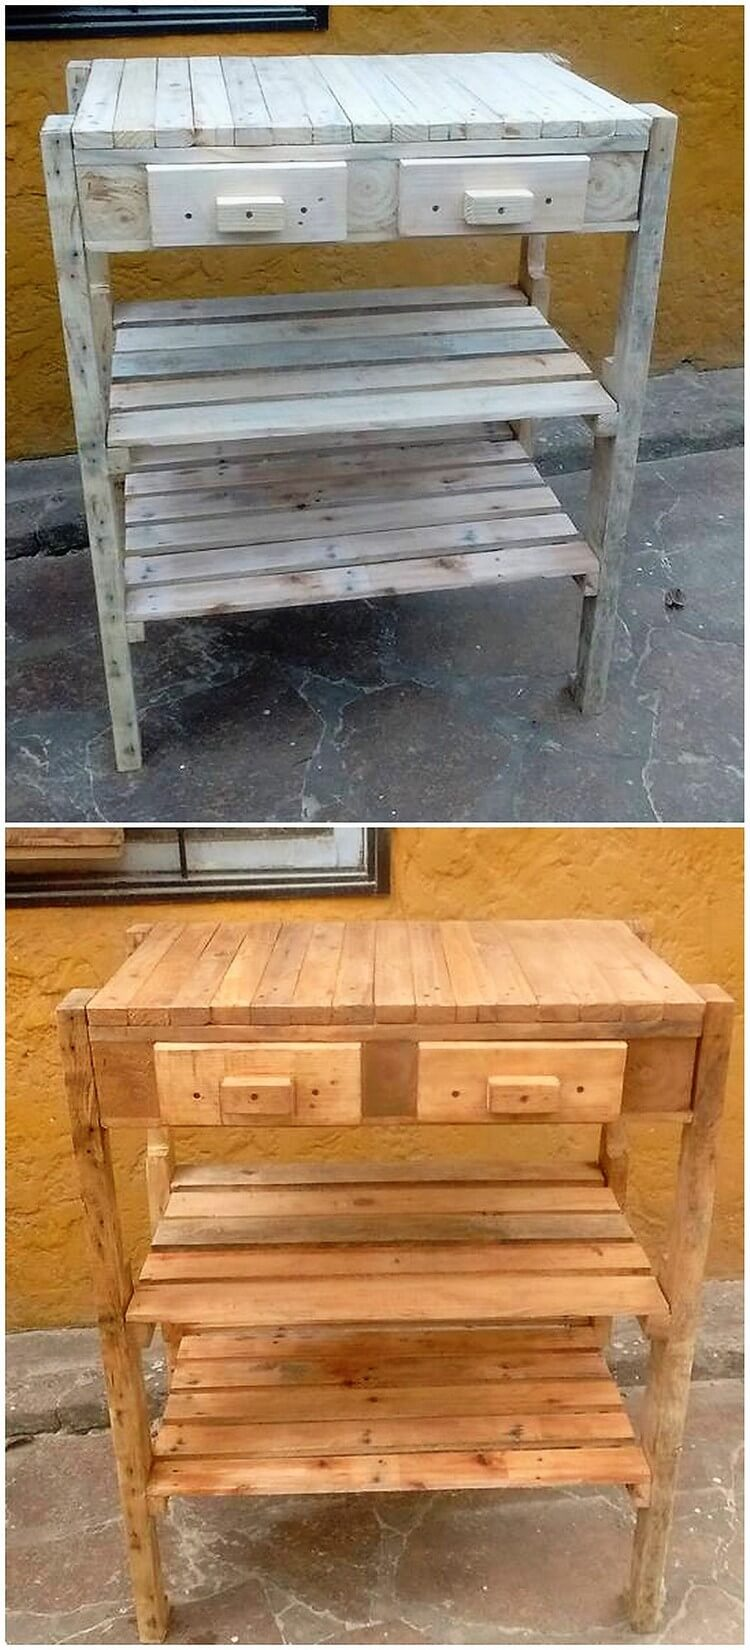 Recycled Pallet Table with Drawers